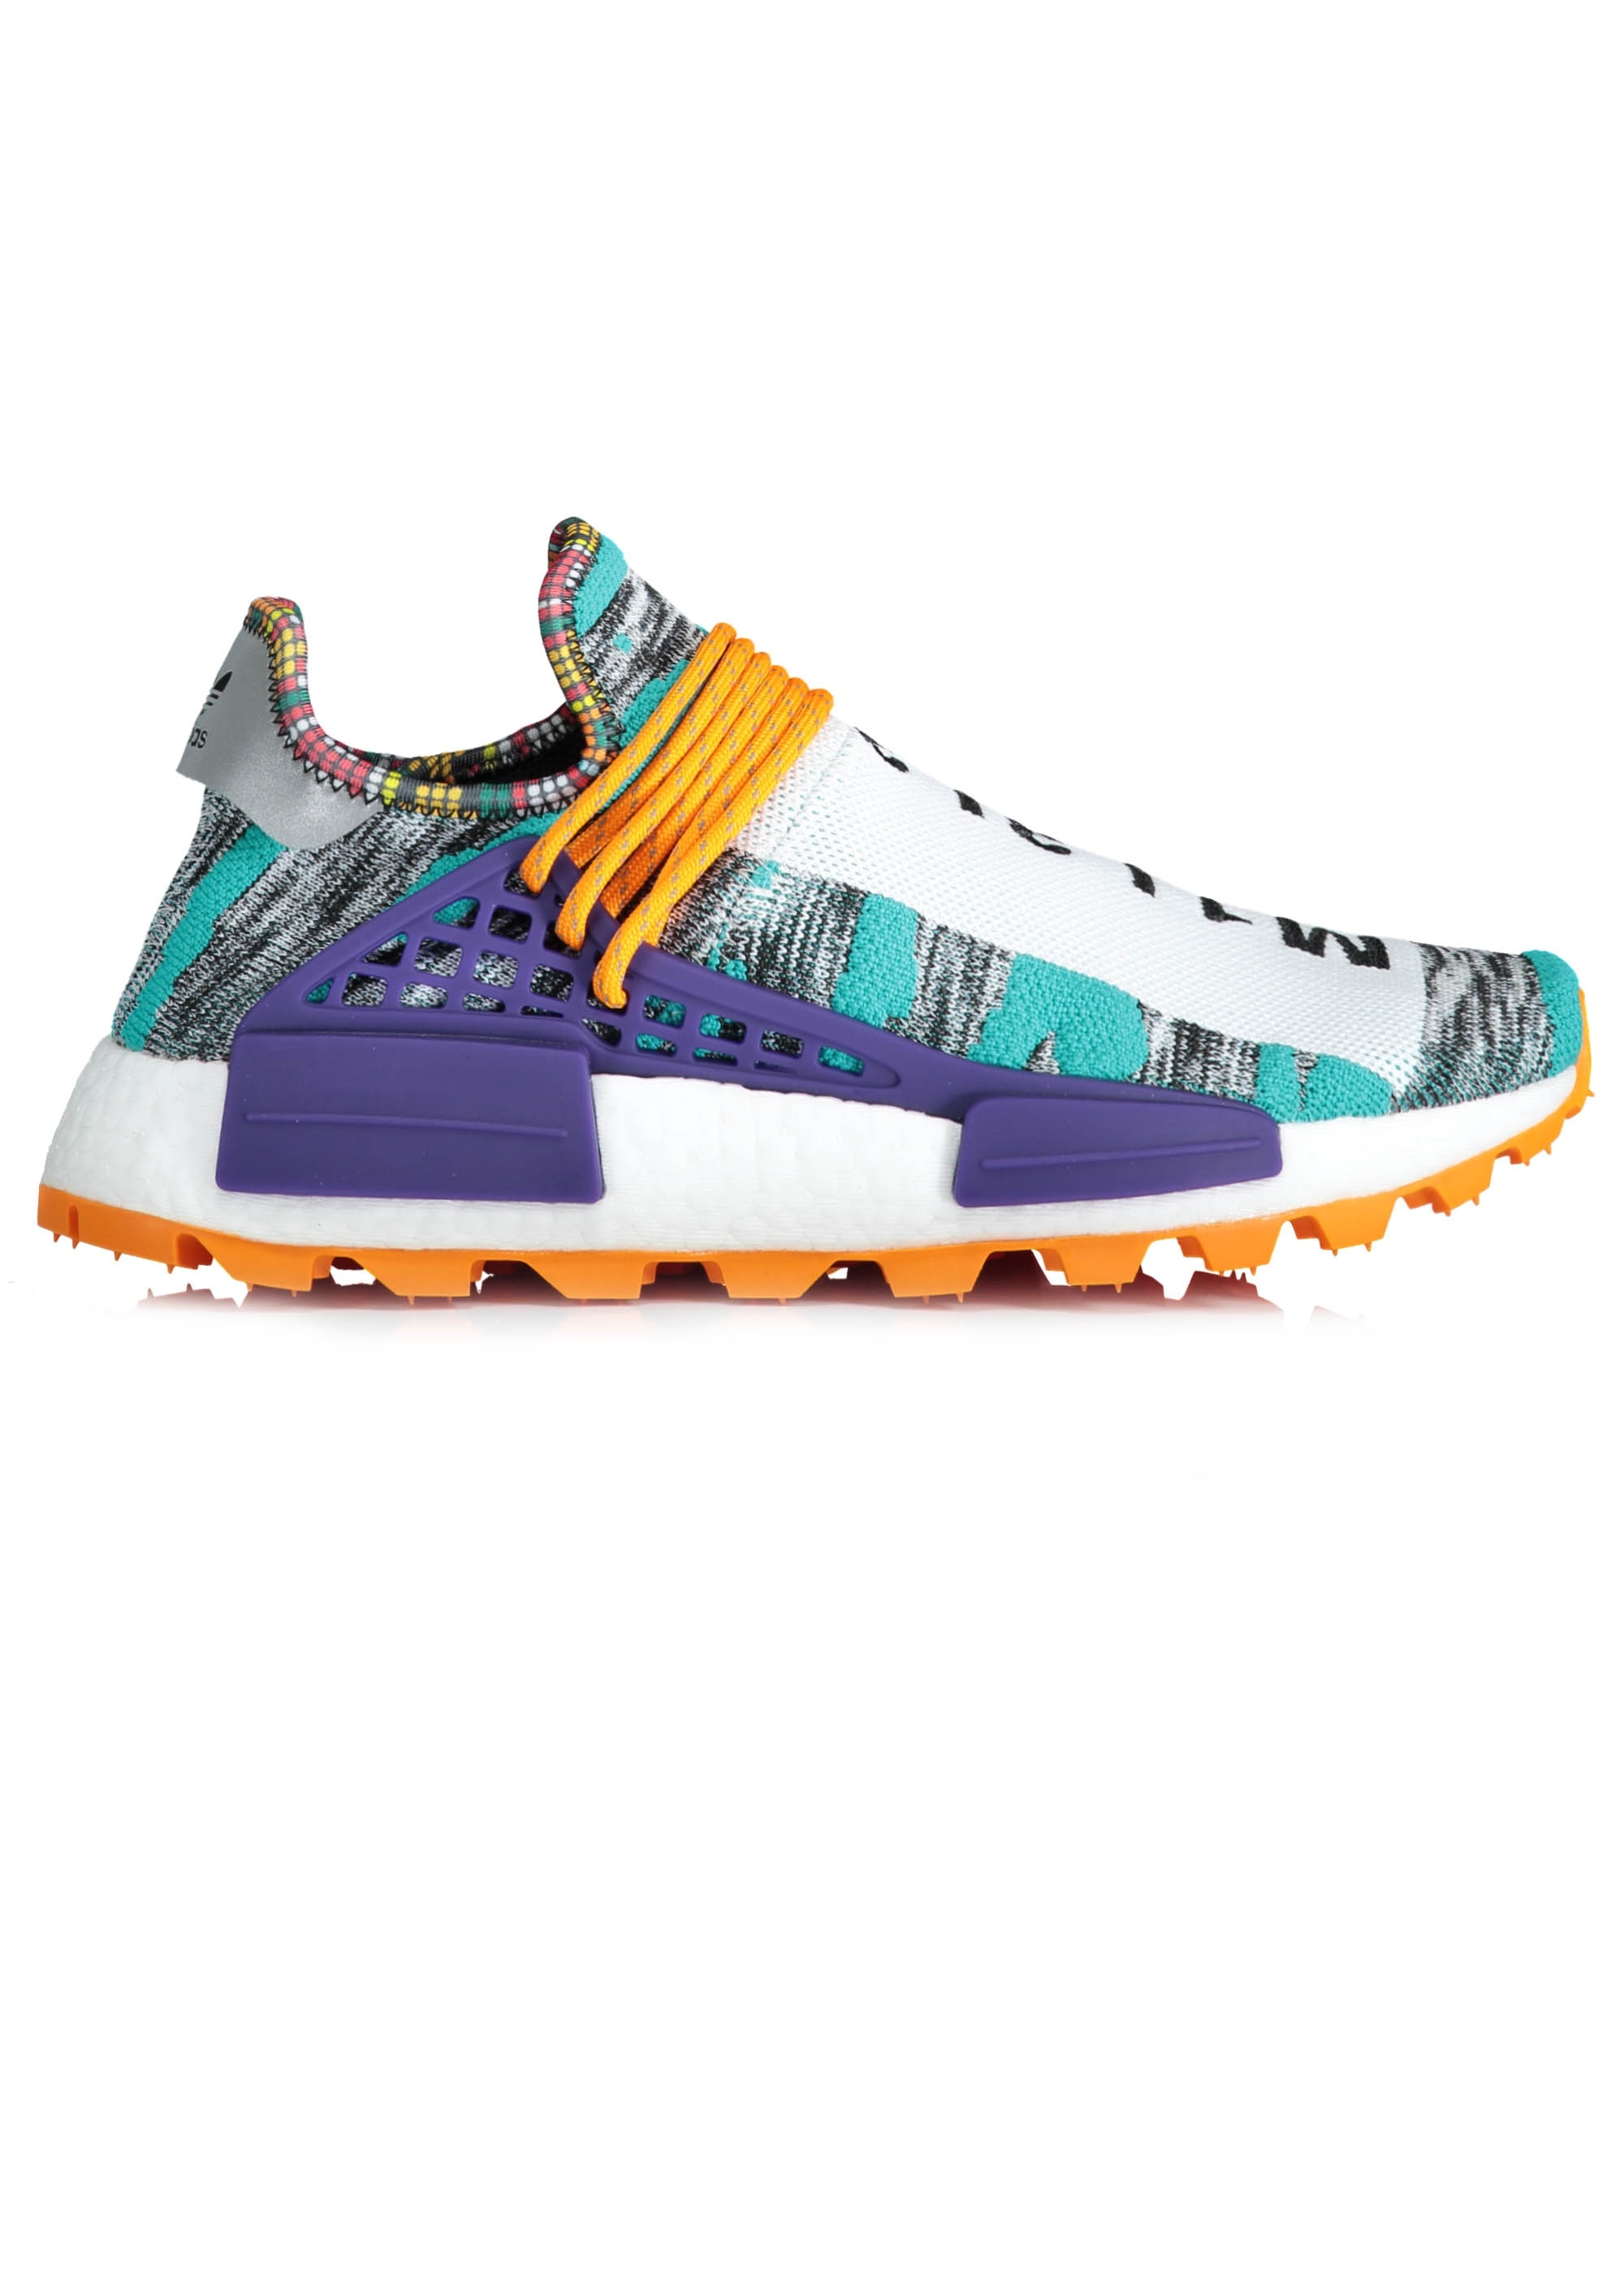 best website 9e925 6602e adidas Originals Footwear x PW Afro Hu NMD - Aqua / Black